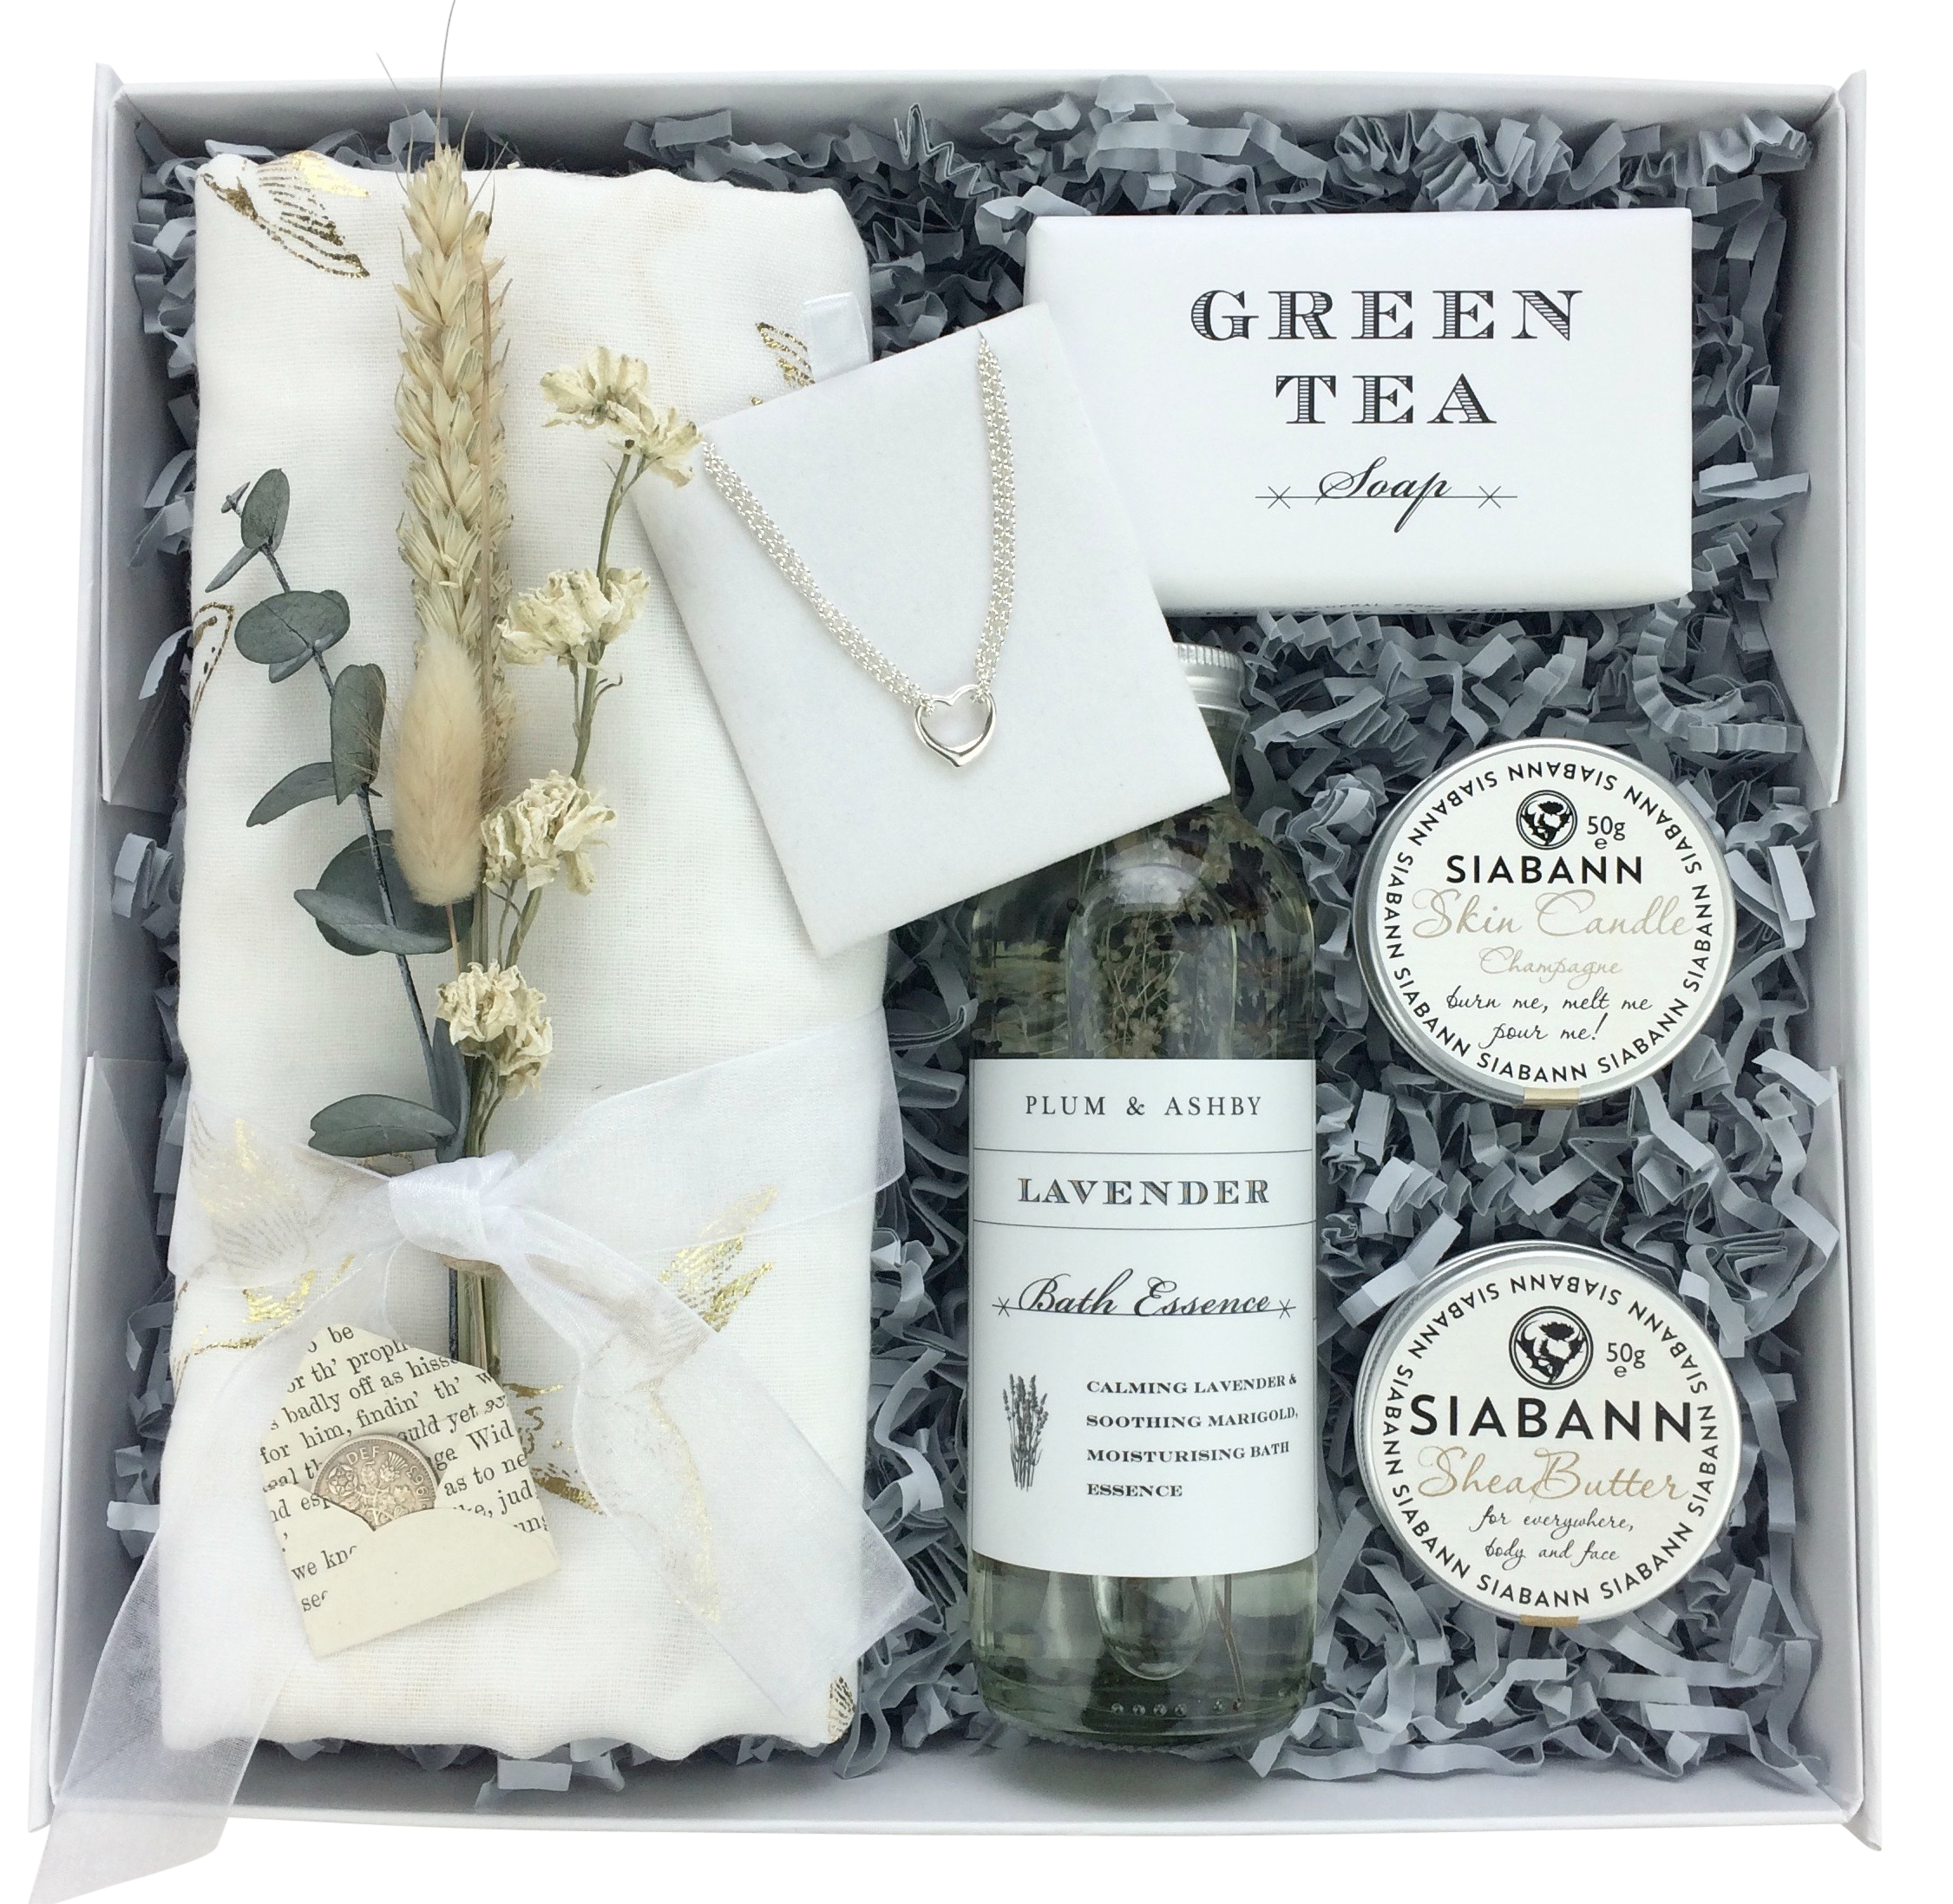 Best Gifts For A Wedding: Win A Bride-to-be Gift Box From Whitebeam Gifts!